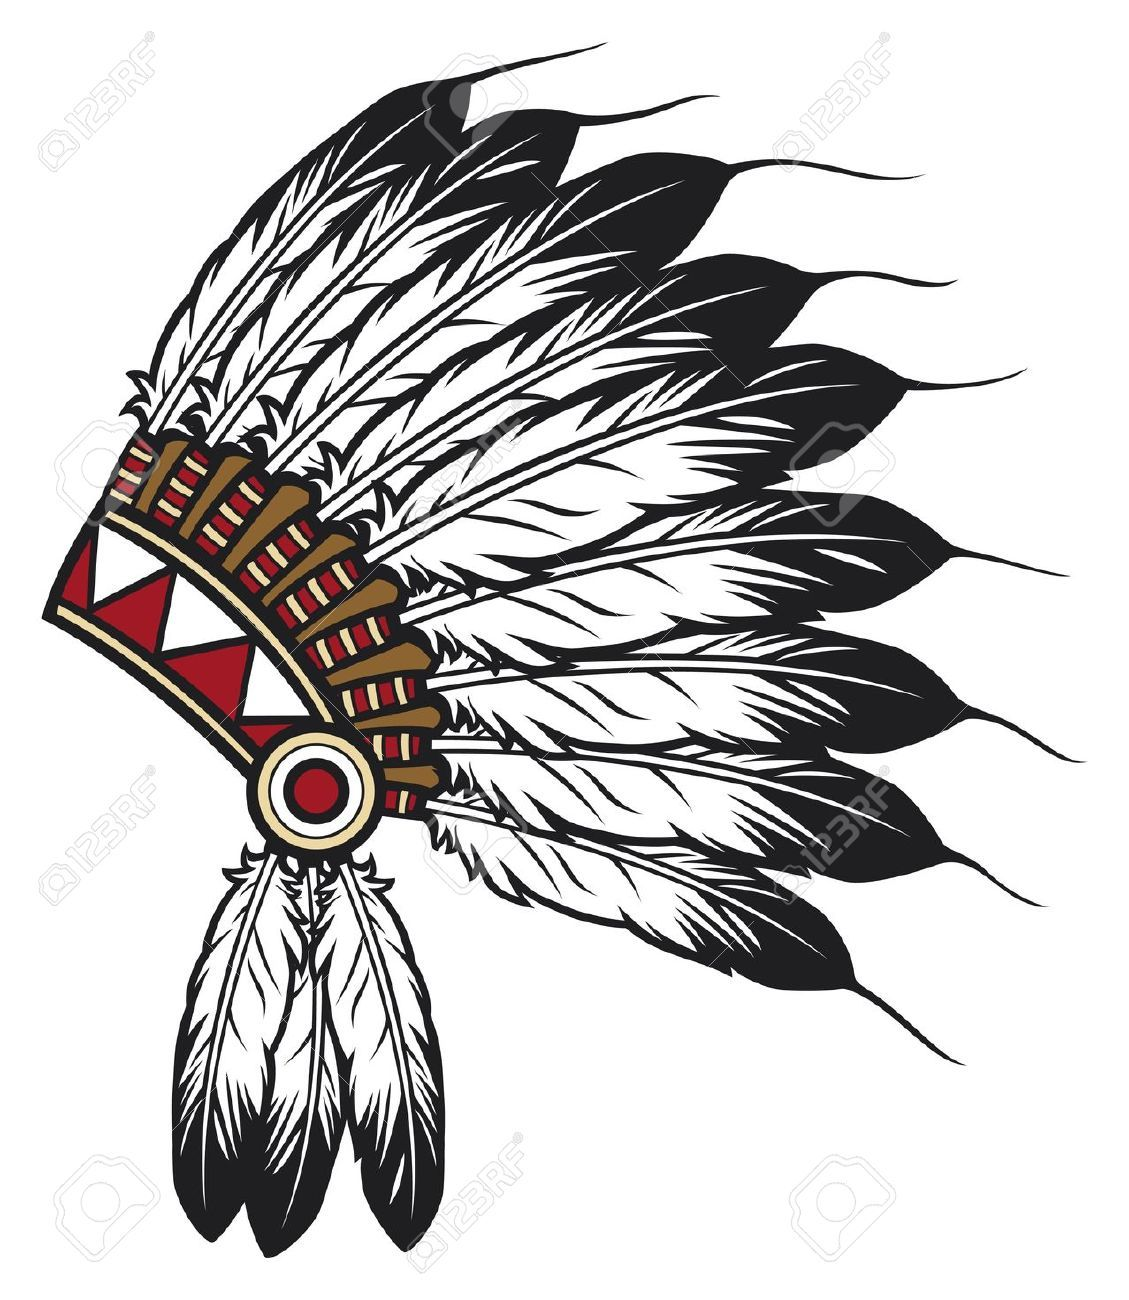 indian headdress clipart [ 1129 x 1300 Pixel ]